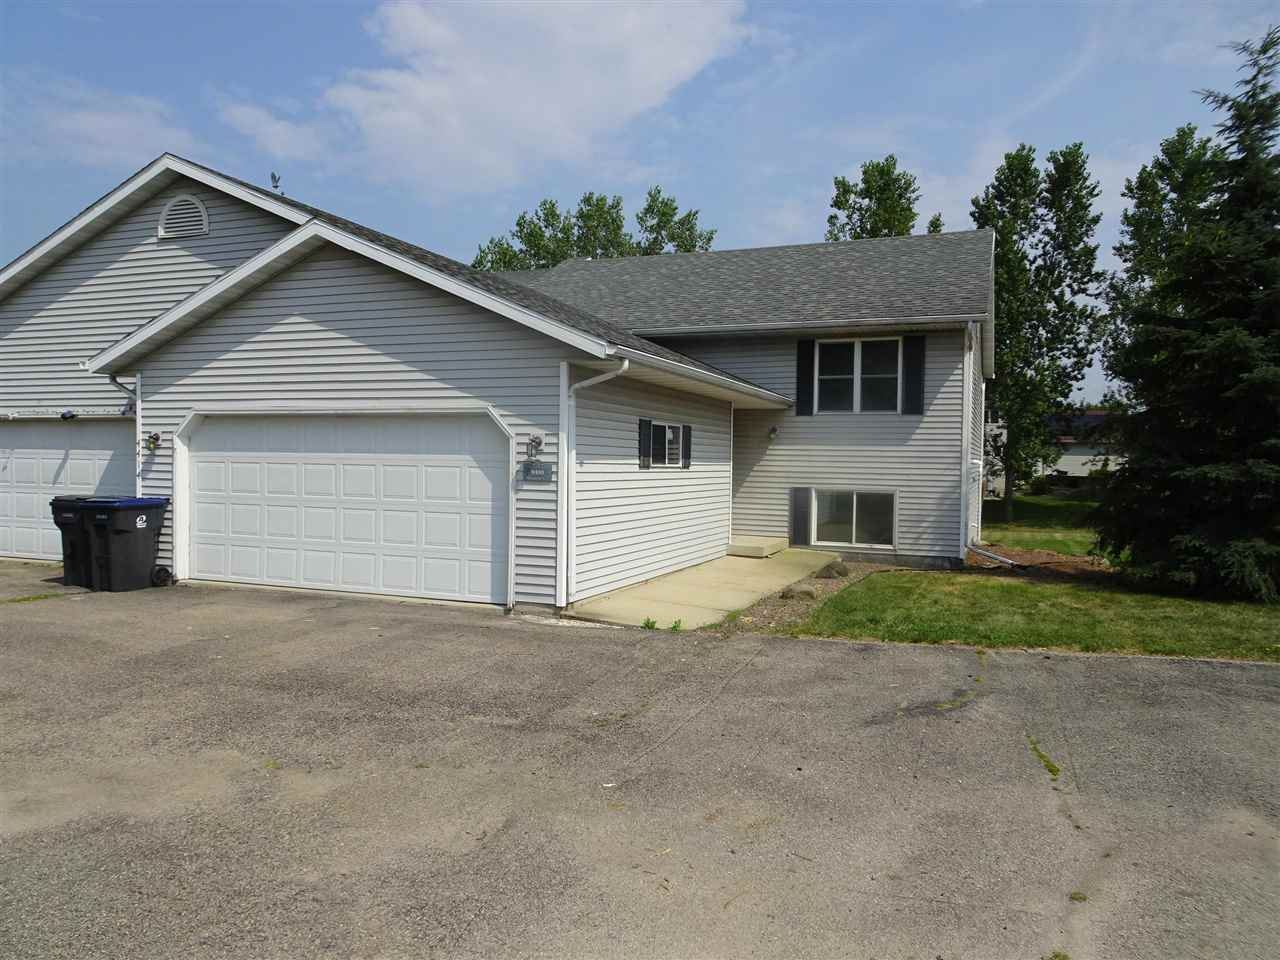 4410 Gray Rd, De Forest, WI 53532 - #: 1915318